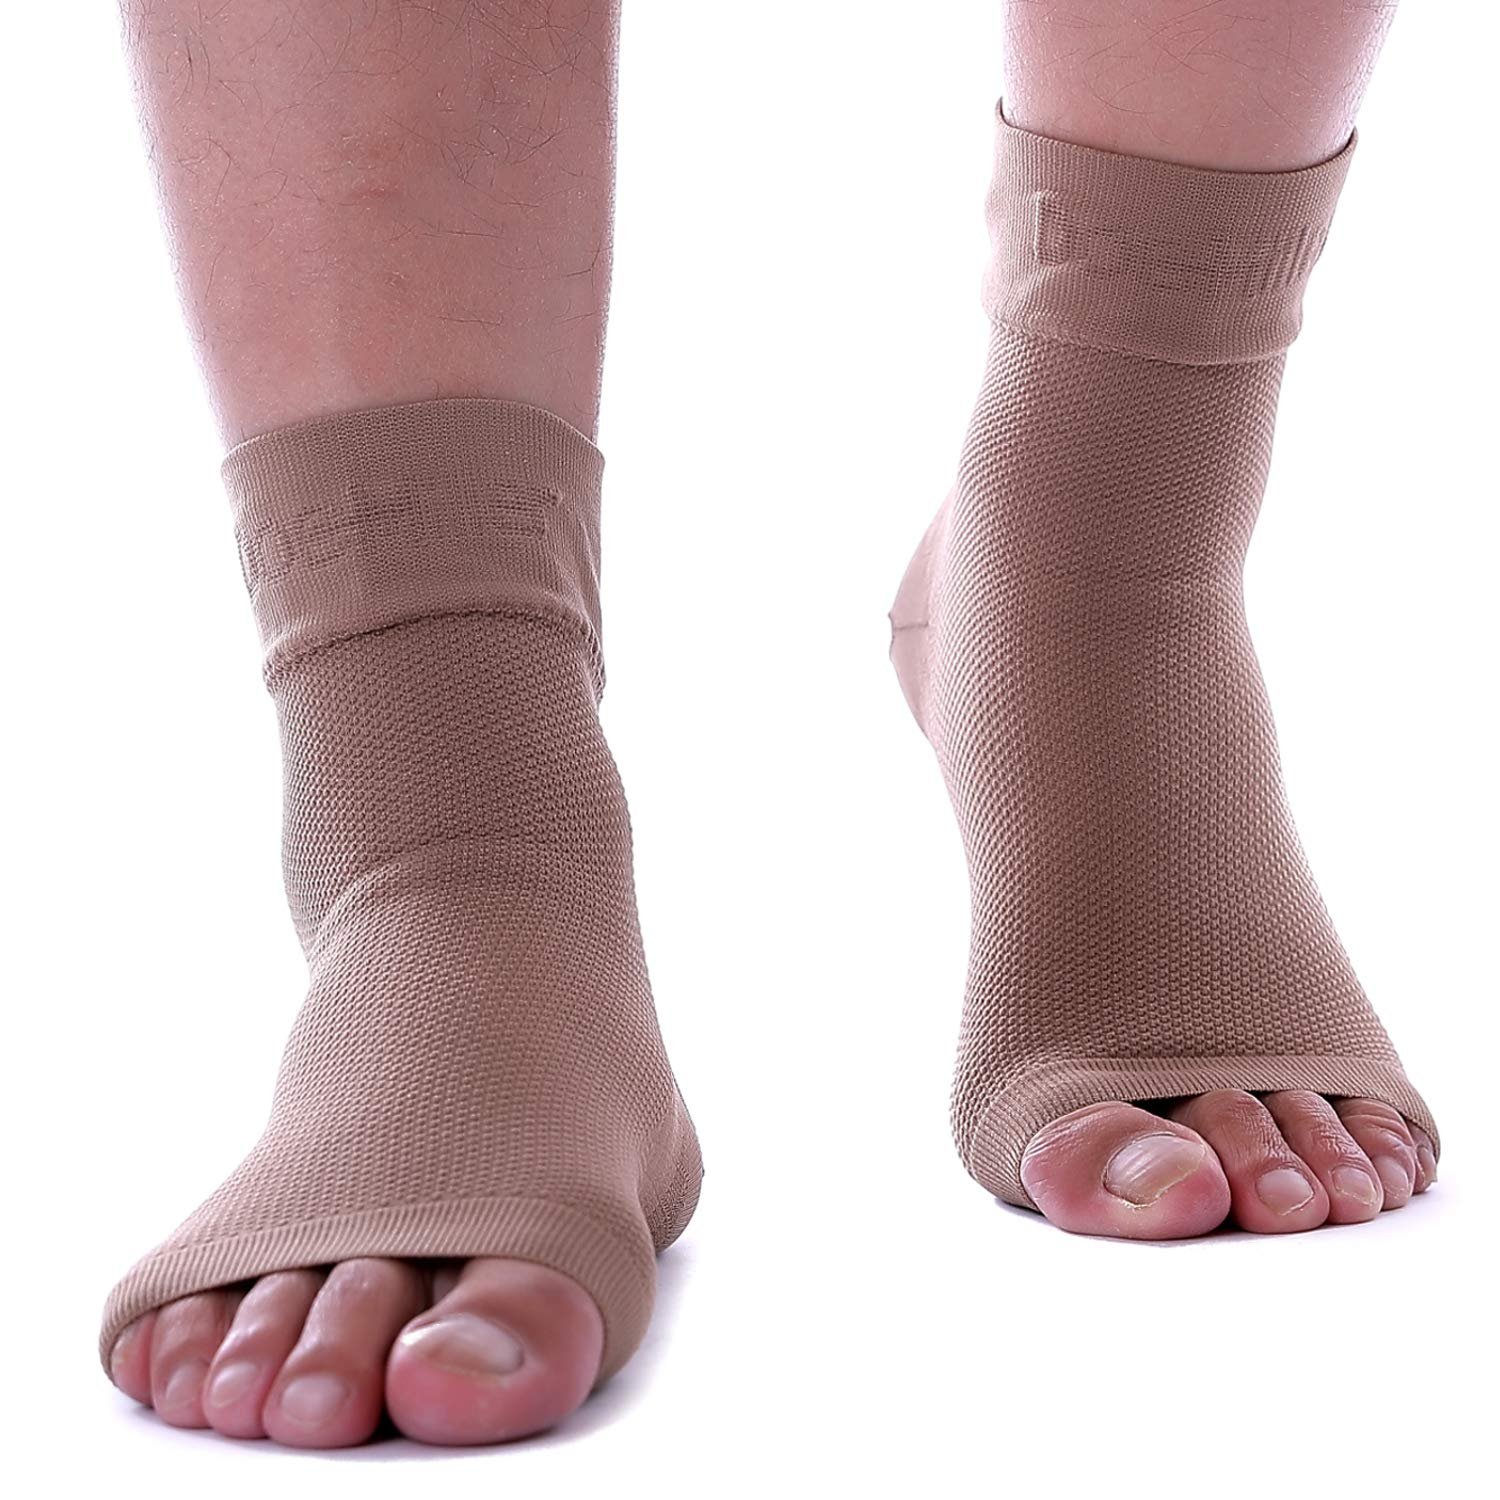 Doc Miller Plantar Fasciitis Socks Medical Grade